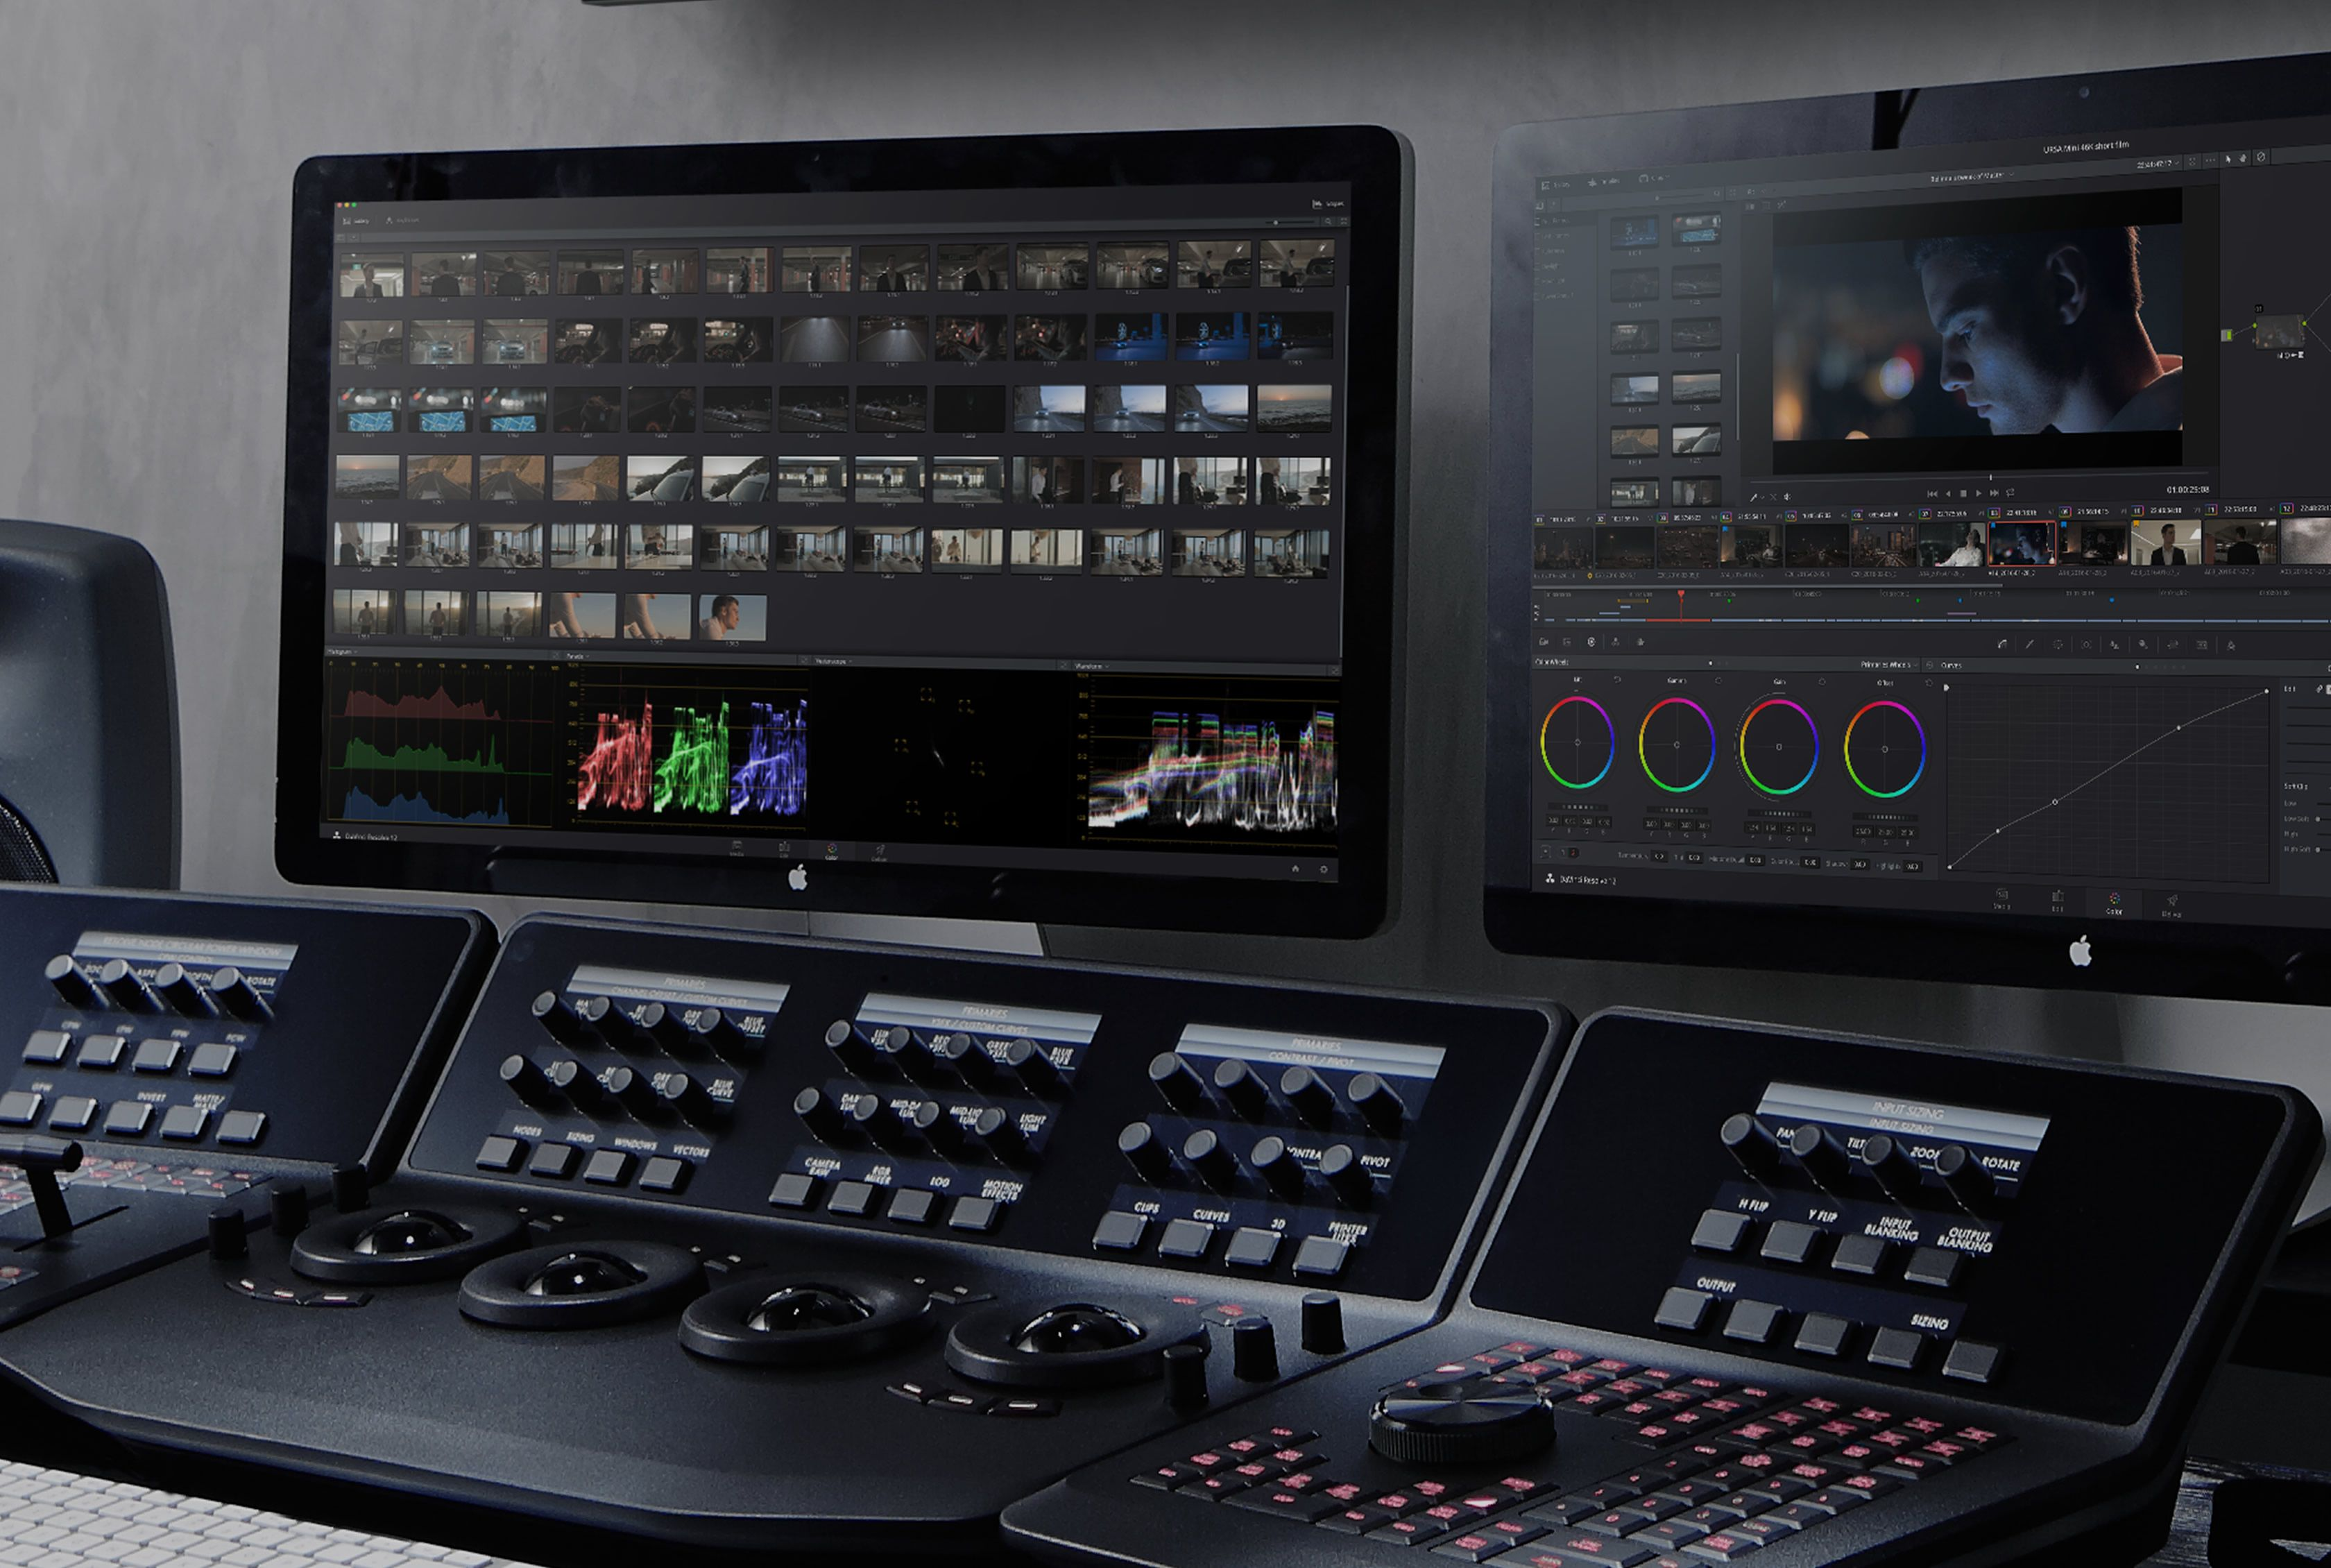 Blackmagic Design Davinci Resolve 12 Color Video Editing Software Blackmagic Design Davinci